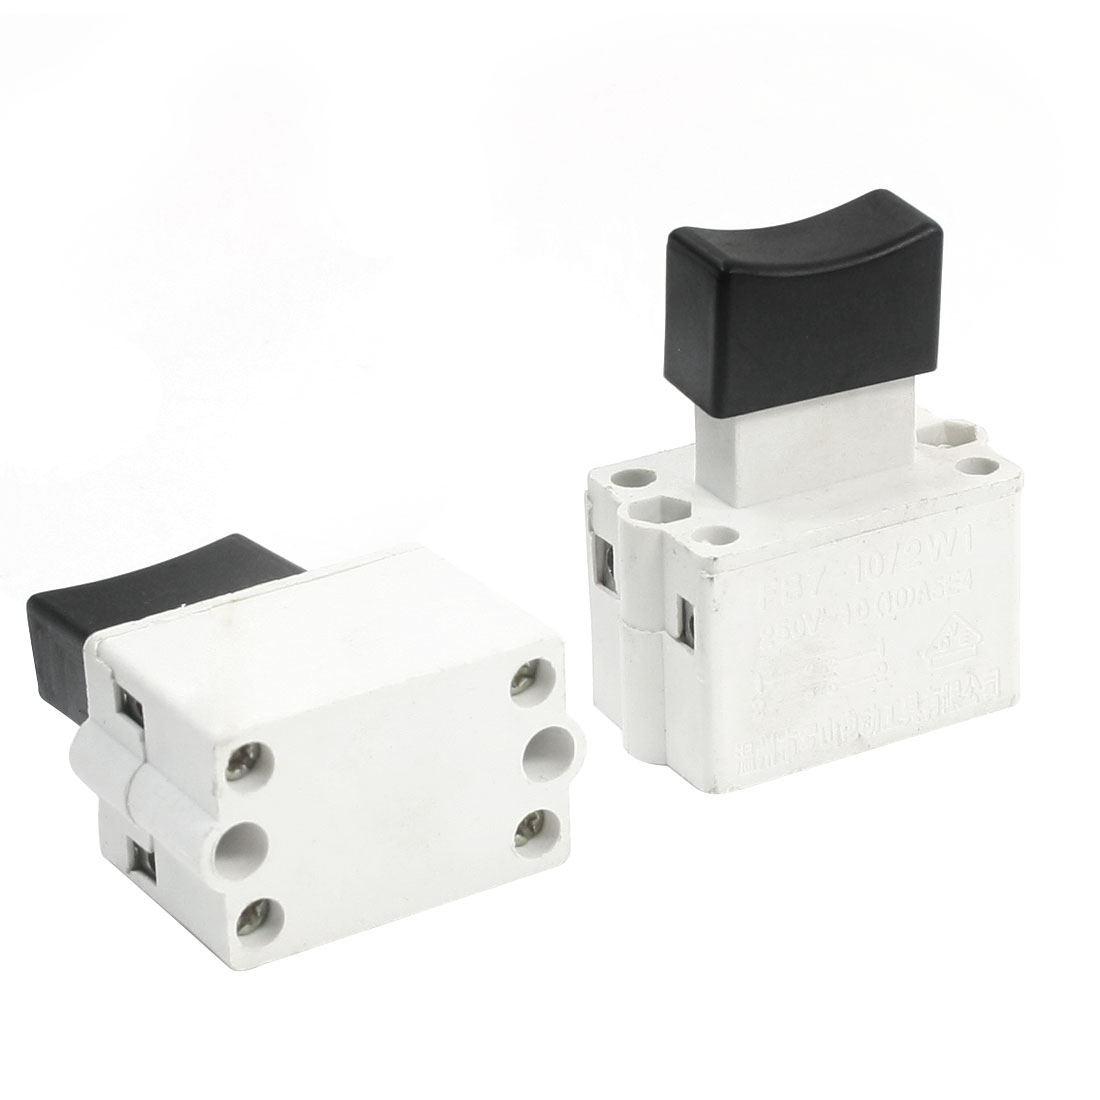 2 Pcs Replacing Momentary DPST 2NO Electric Trigger Switch for Cutting Machine